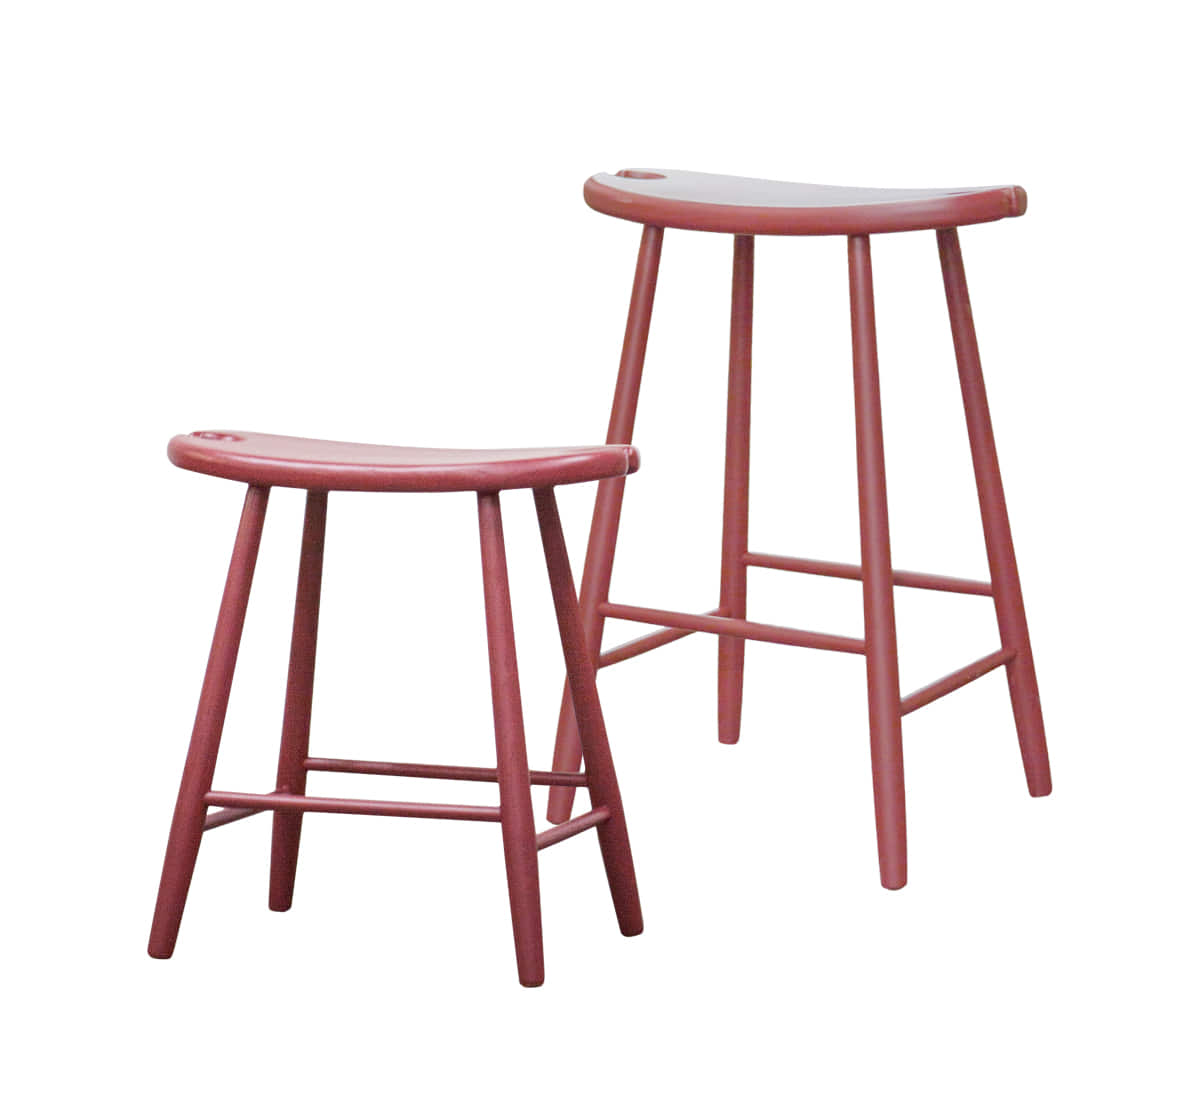 Zacc collection by SEDECSaddle Stool & Island Stool (Red)새들 스툴 & 아일랜드 스툴 (레드)